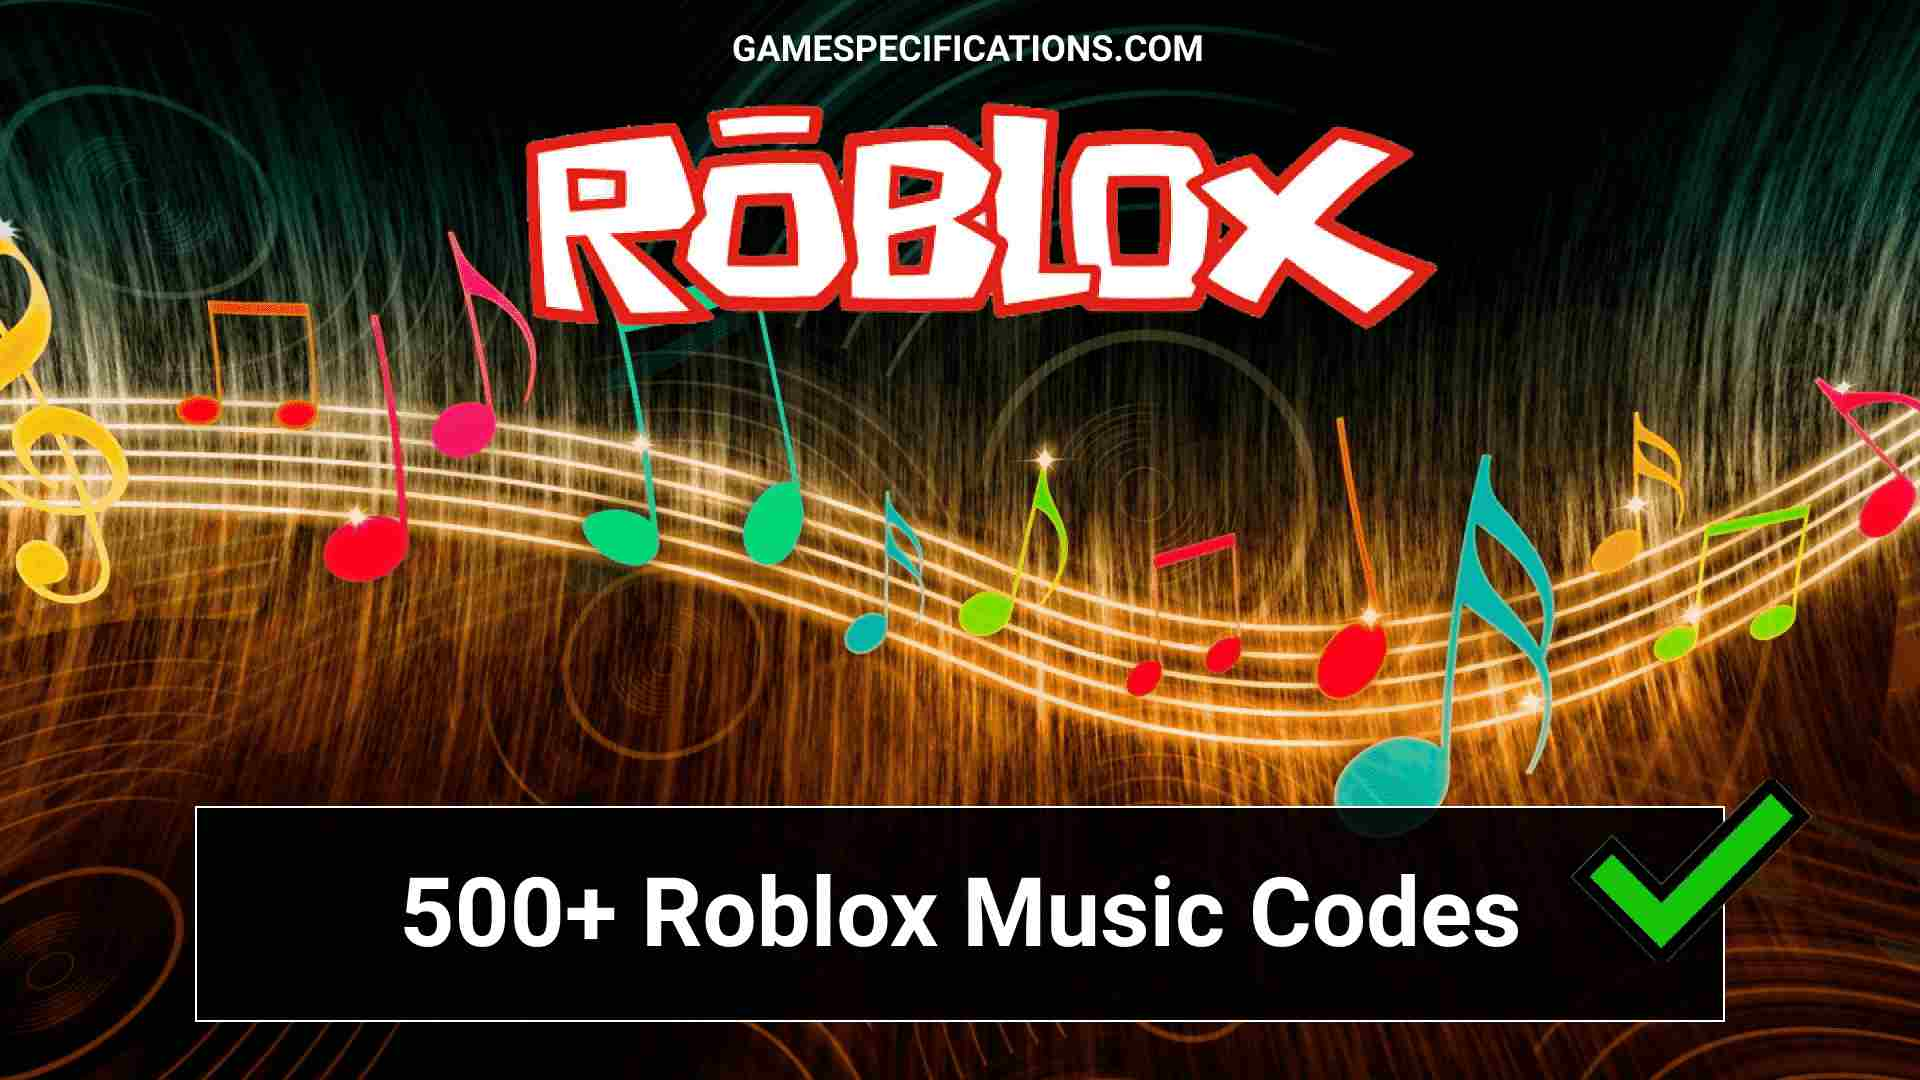 500+ Roblox Music Codes & Song ID 2021 - Game Specifications